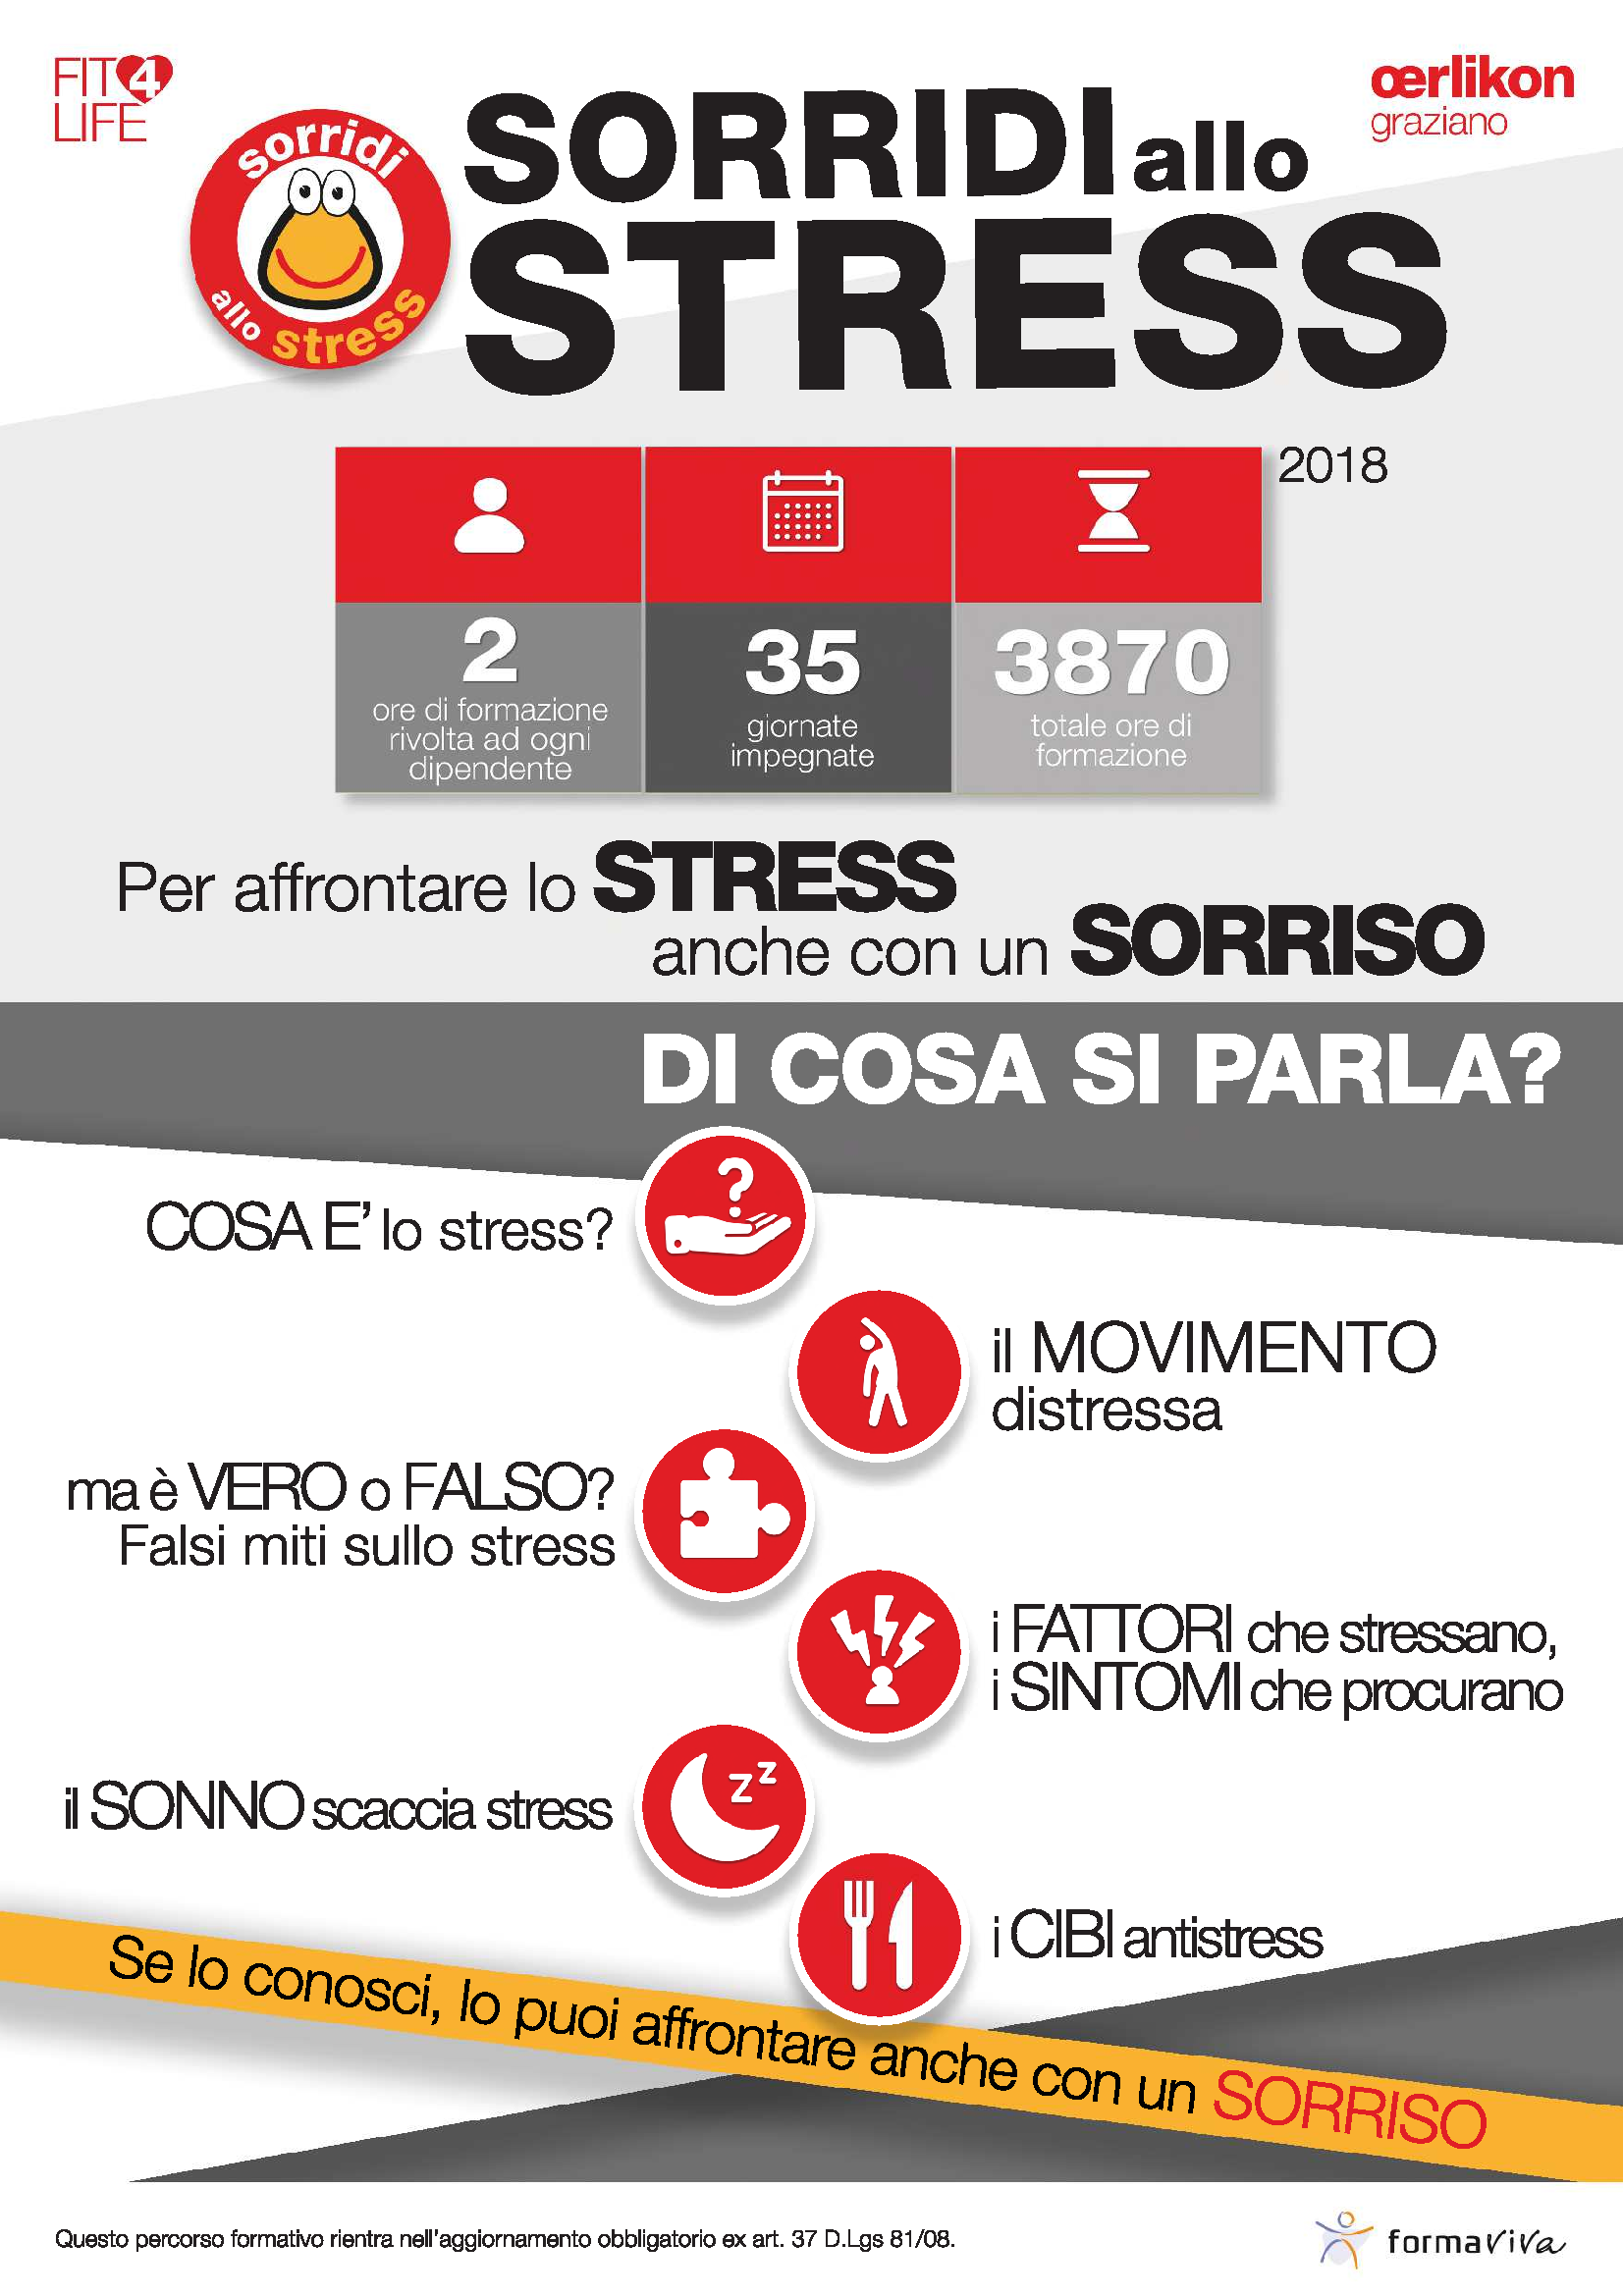 http://www.fondlhs.org/wp-content/uploads/2018/03/LocandinaOerlikon_Sorridi-allo-stress2.png